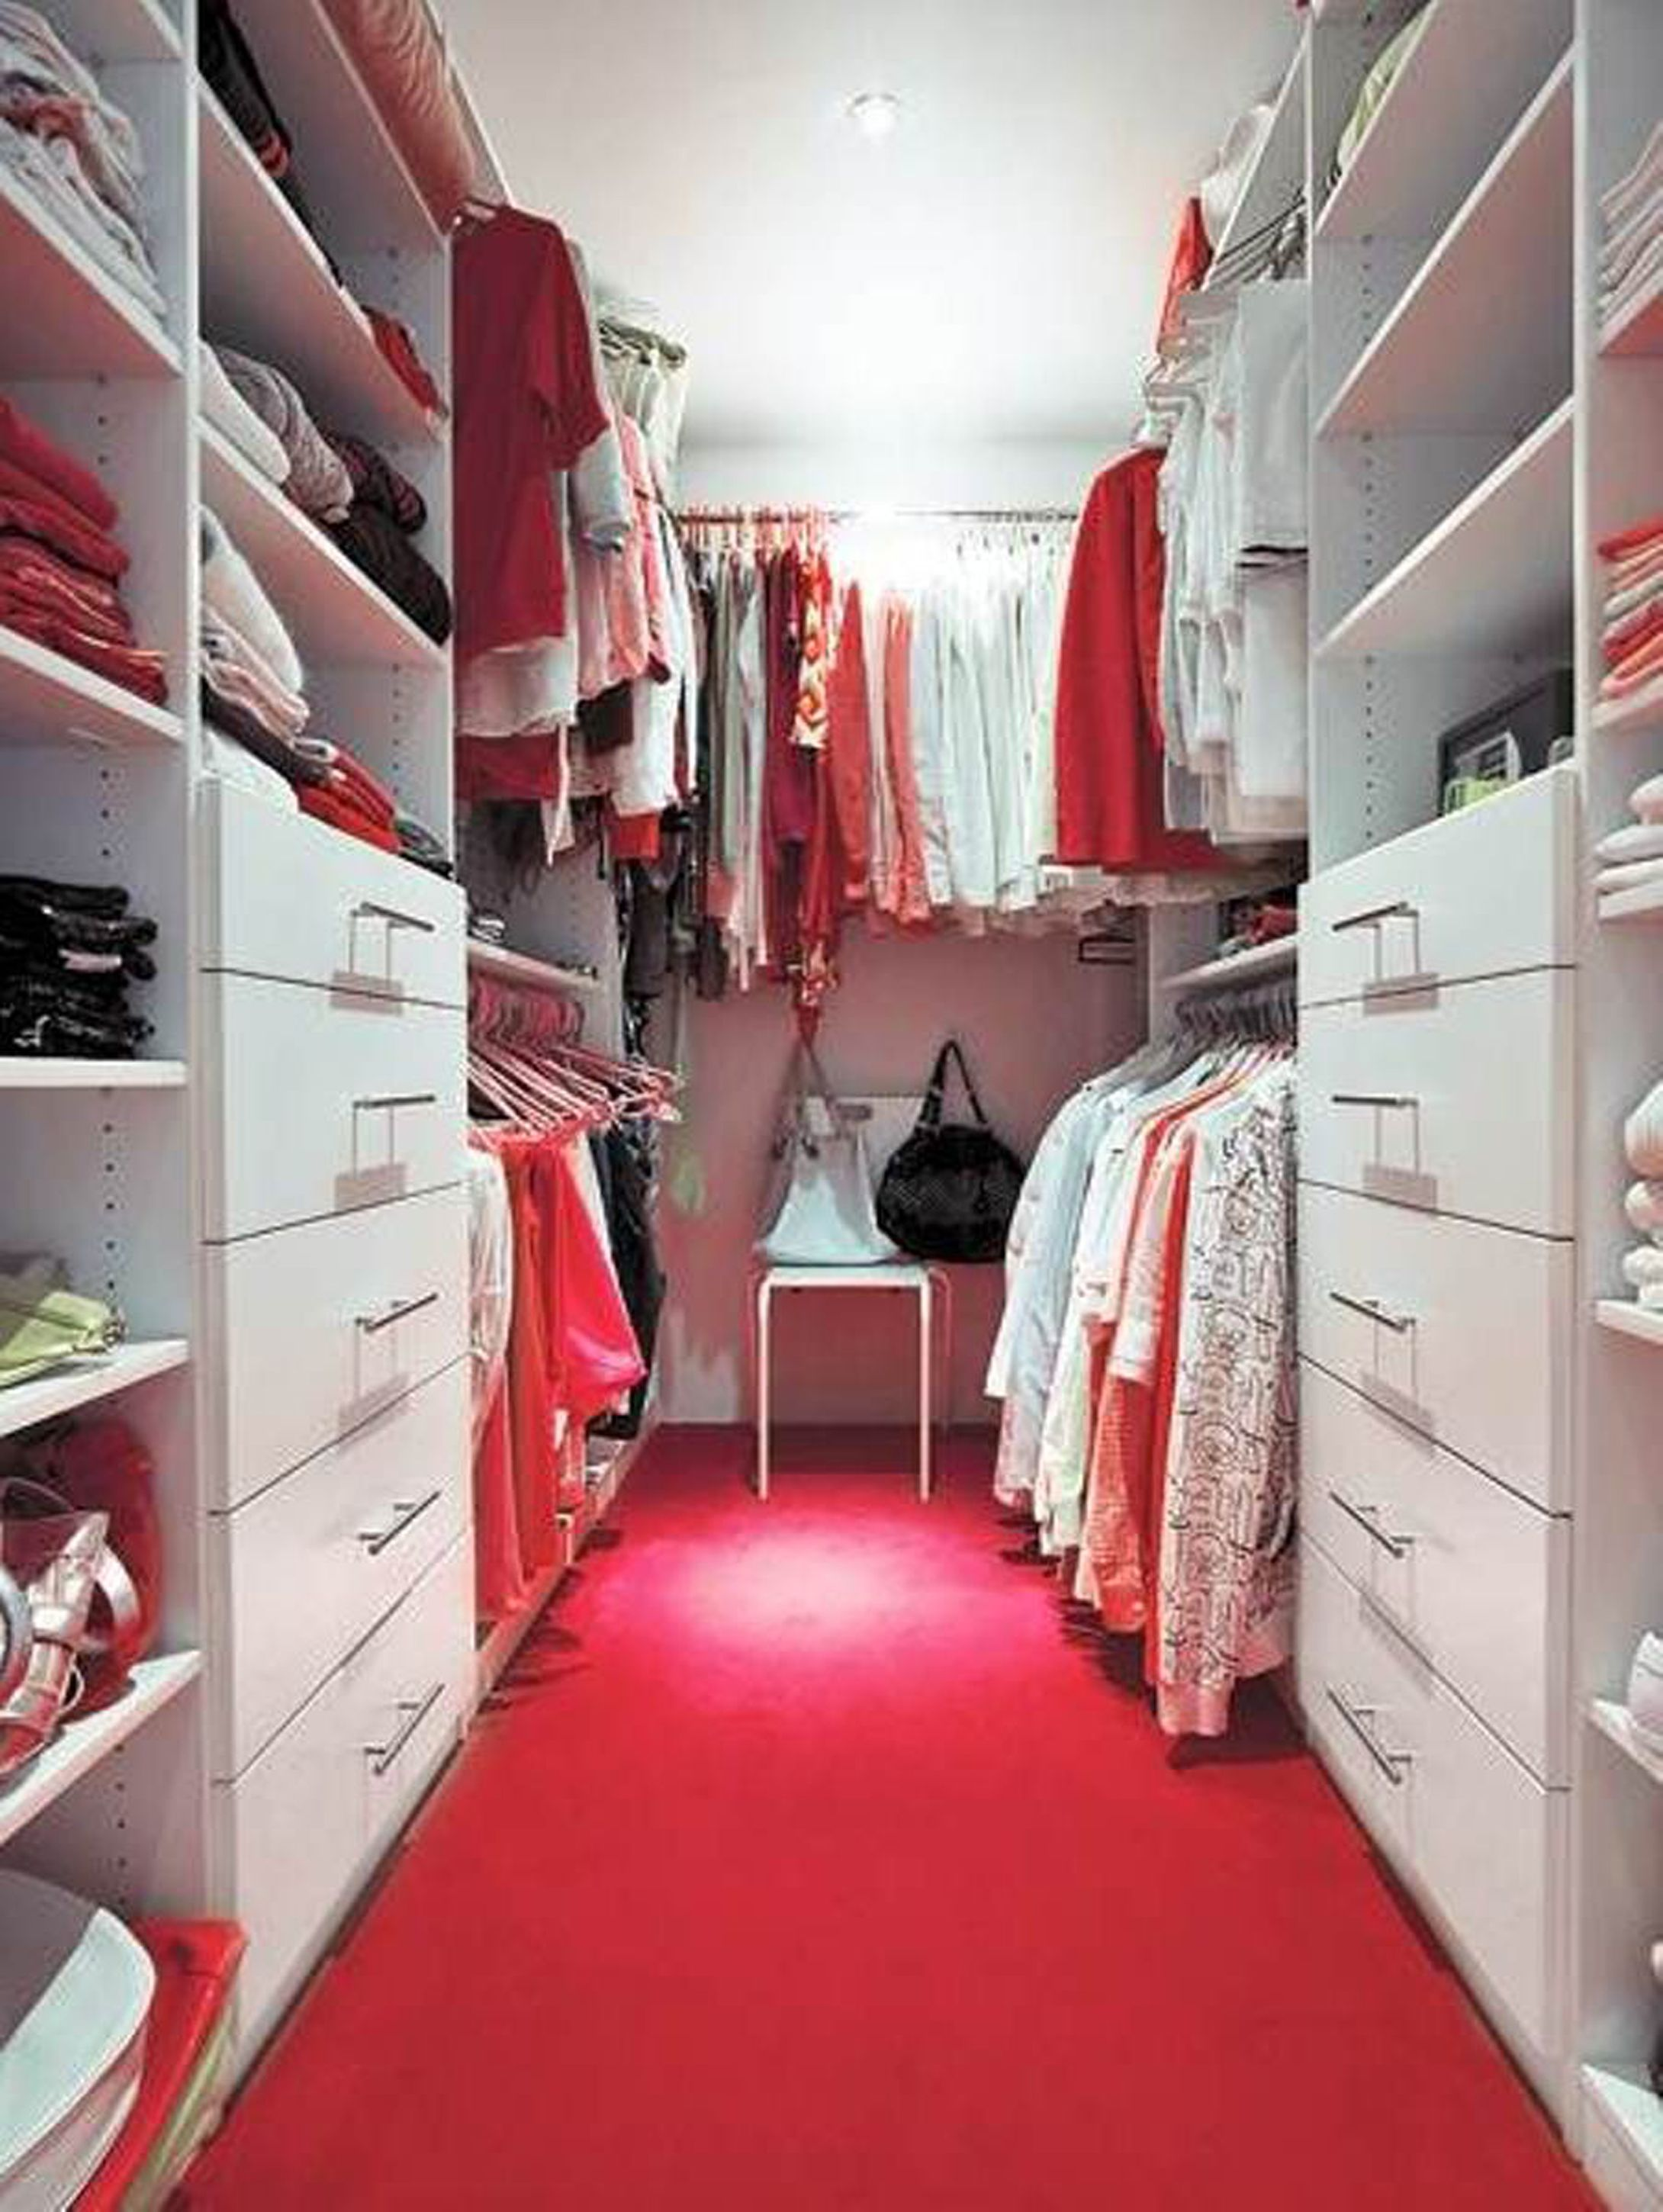 small walk in closet design ideas stunning kids walk in closets ideas with white rack and - Small Walk In Closet Design Ideas